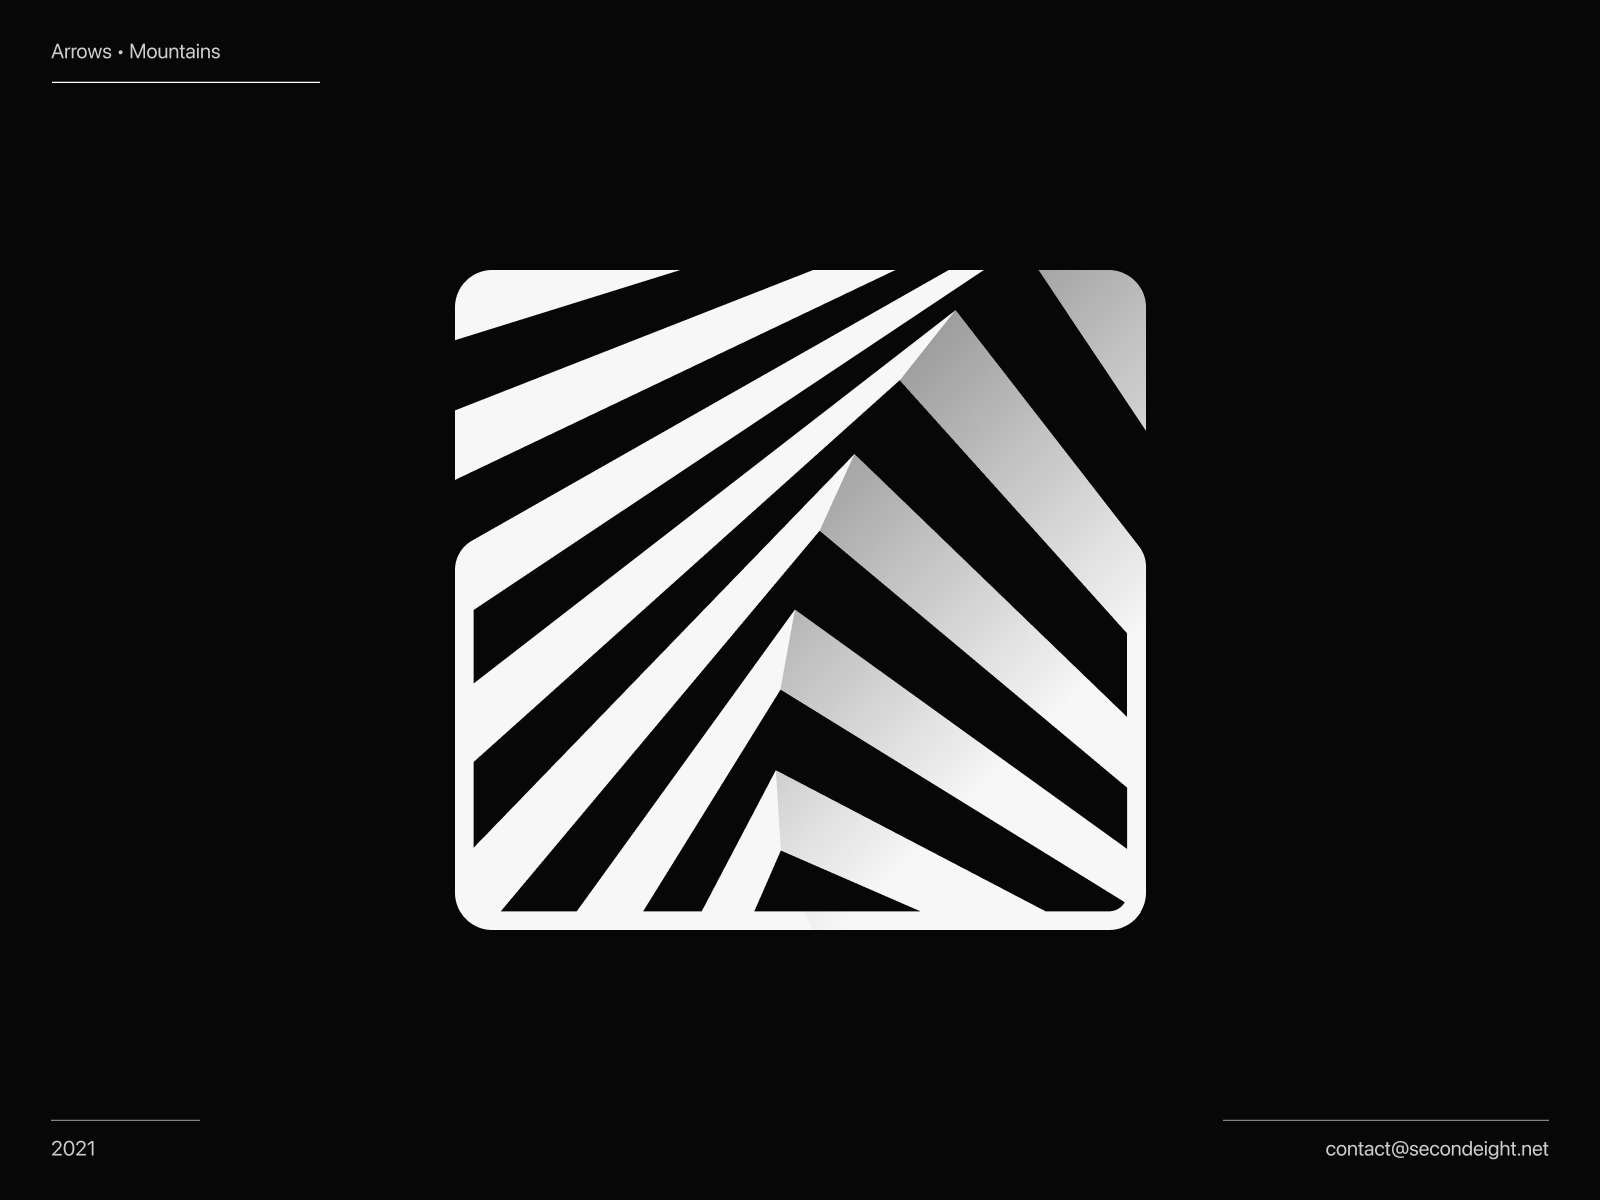 Abstract symbol / Arrows / Mountains